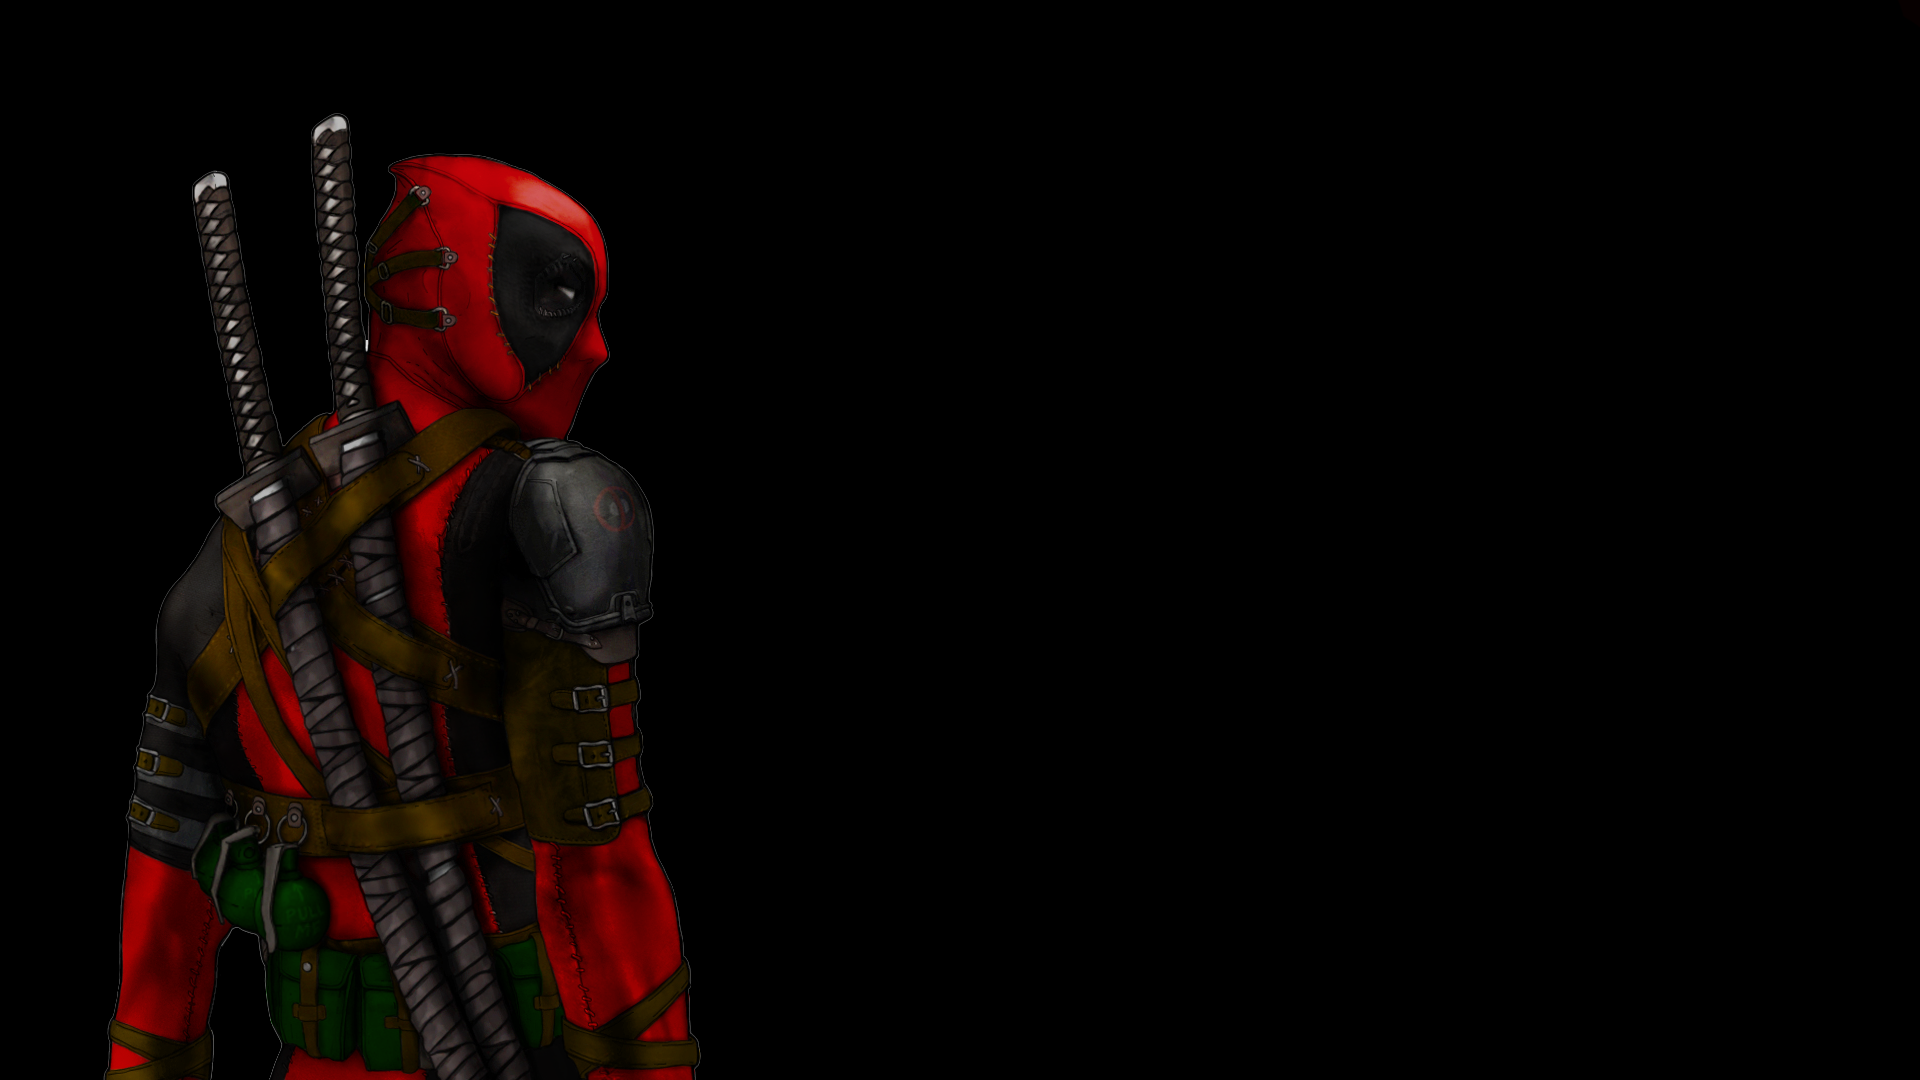 Photos deadpool wallpaper hd 1080p 1920x1080